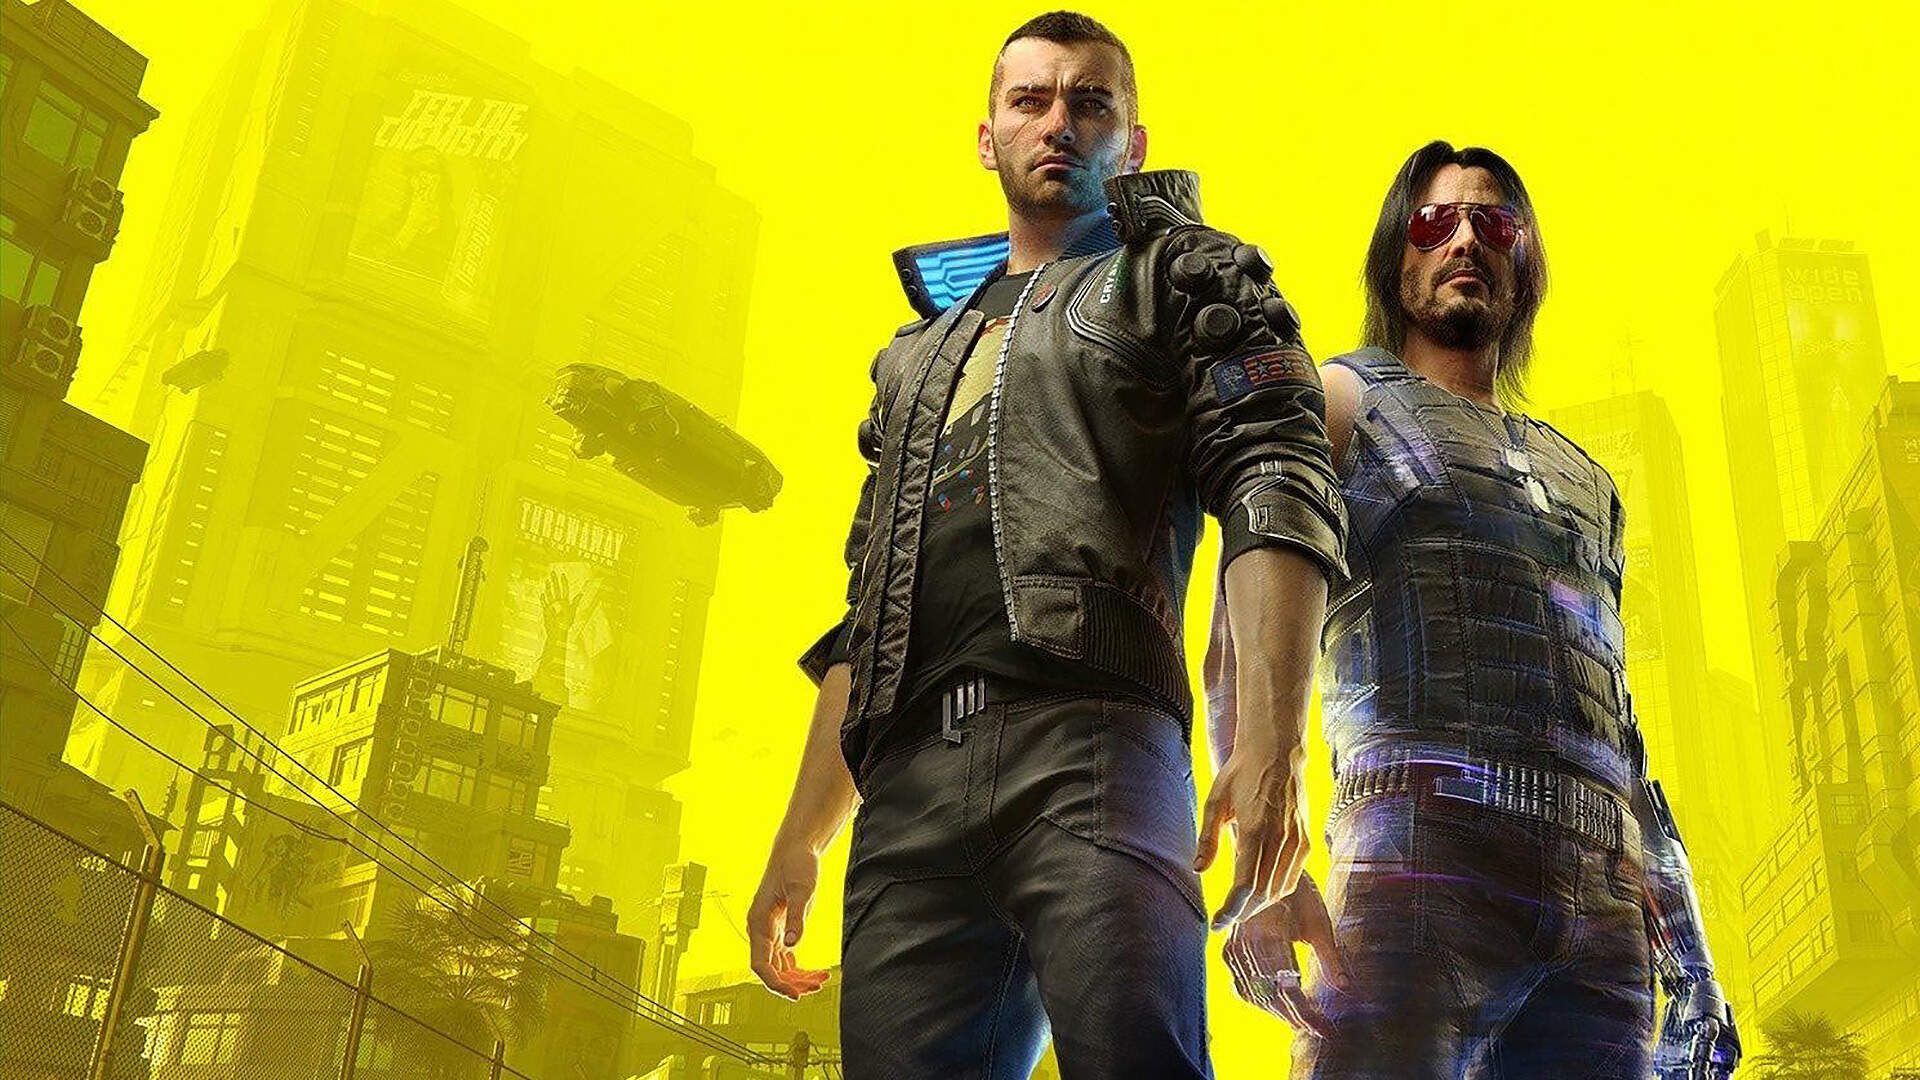 Cyberpunk 2077 Is Delayed Again to December